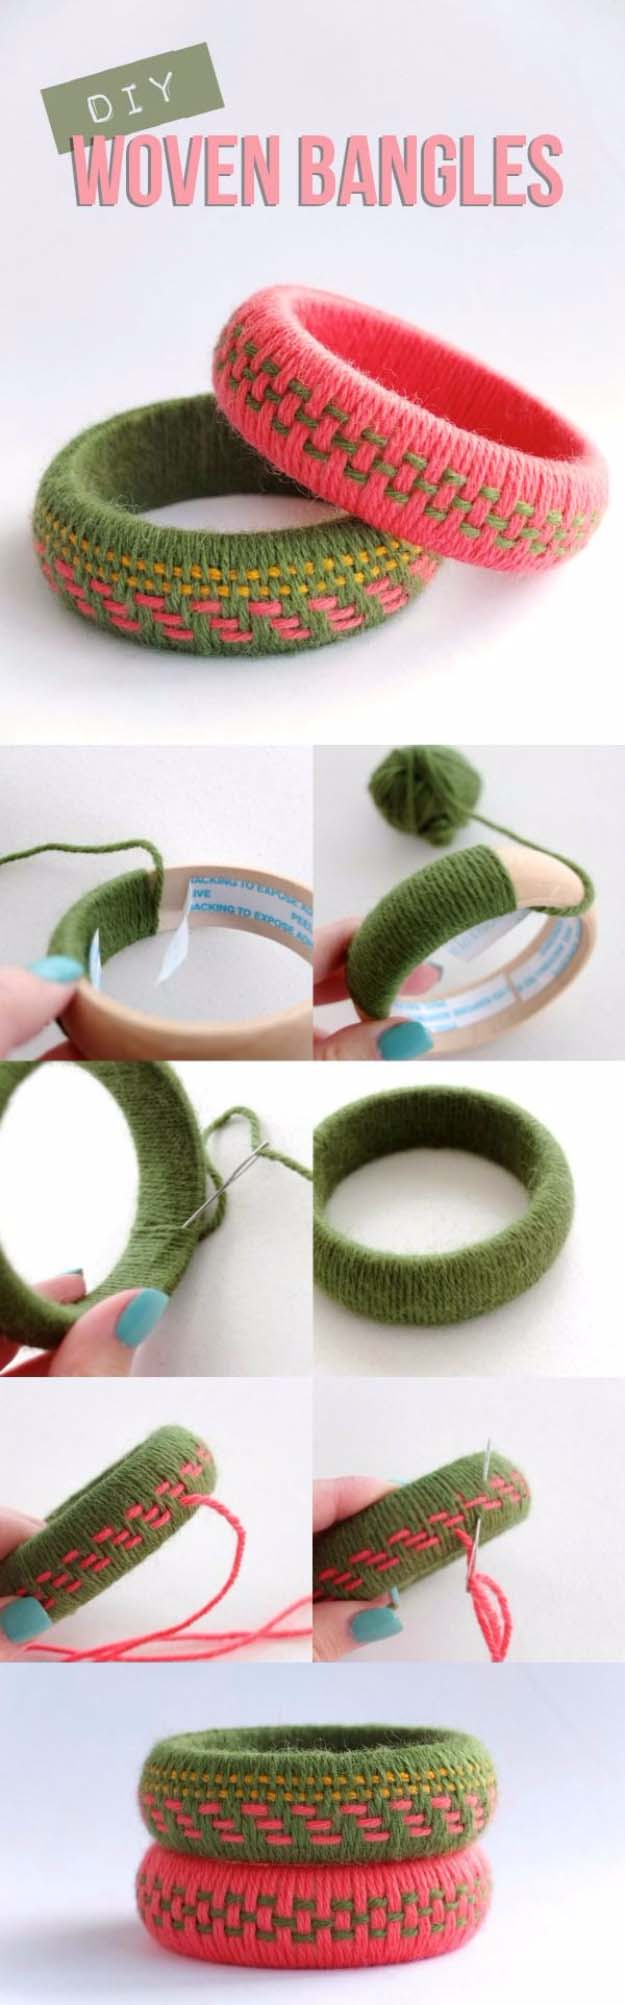 DIY Gifts for Your Girlfriend and Cool Homemade Gift Ideas for Her   Easy Creative DIY Projects and Tutorials for Christmas, Birthday and Anniversary Gifts for Mom, Sister, Aunt, Teacher or Friends   DIY Woven Yarn Bangles for Unique Homemade Present #diygifts #diyideas